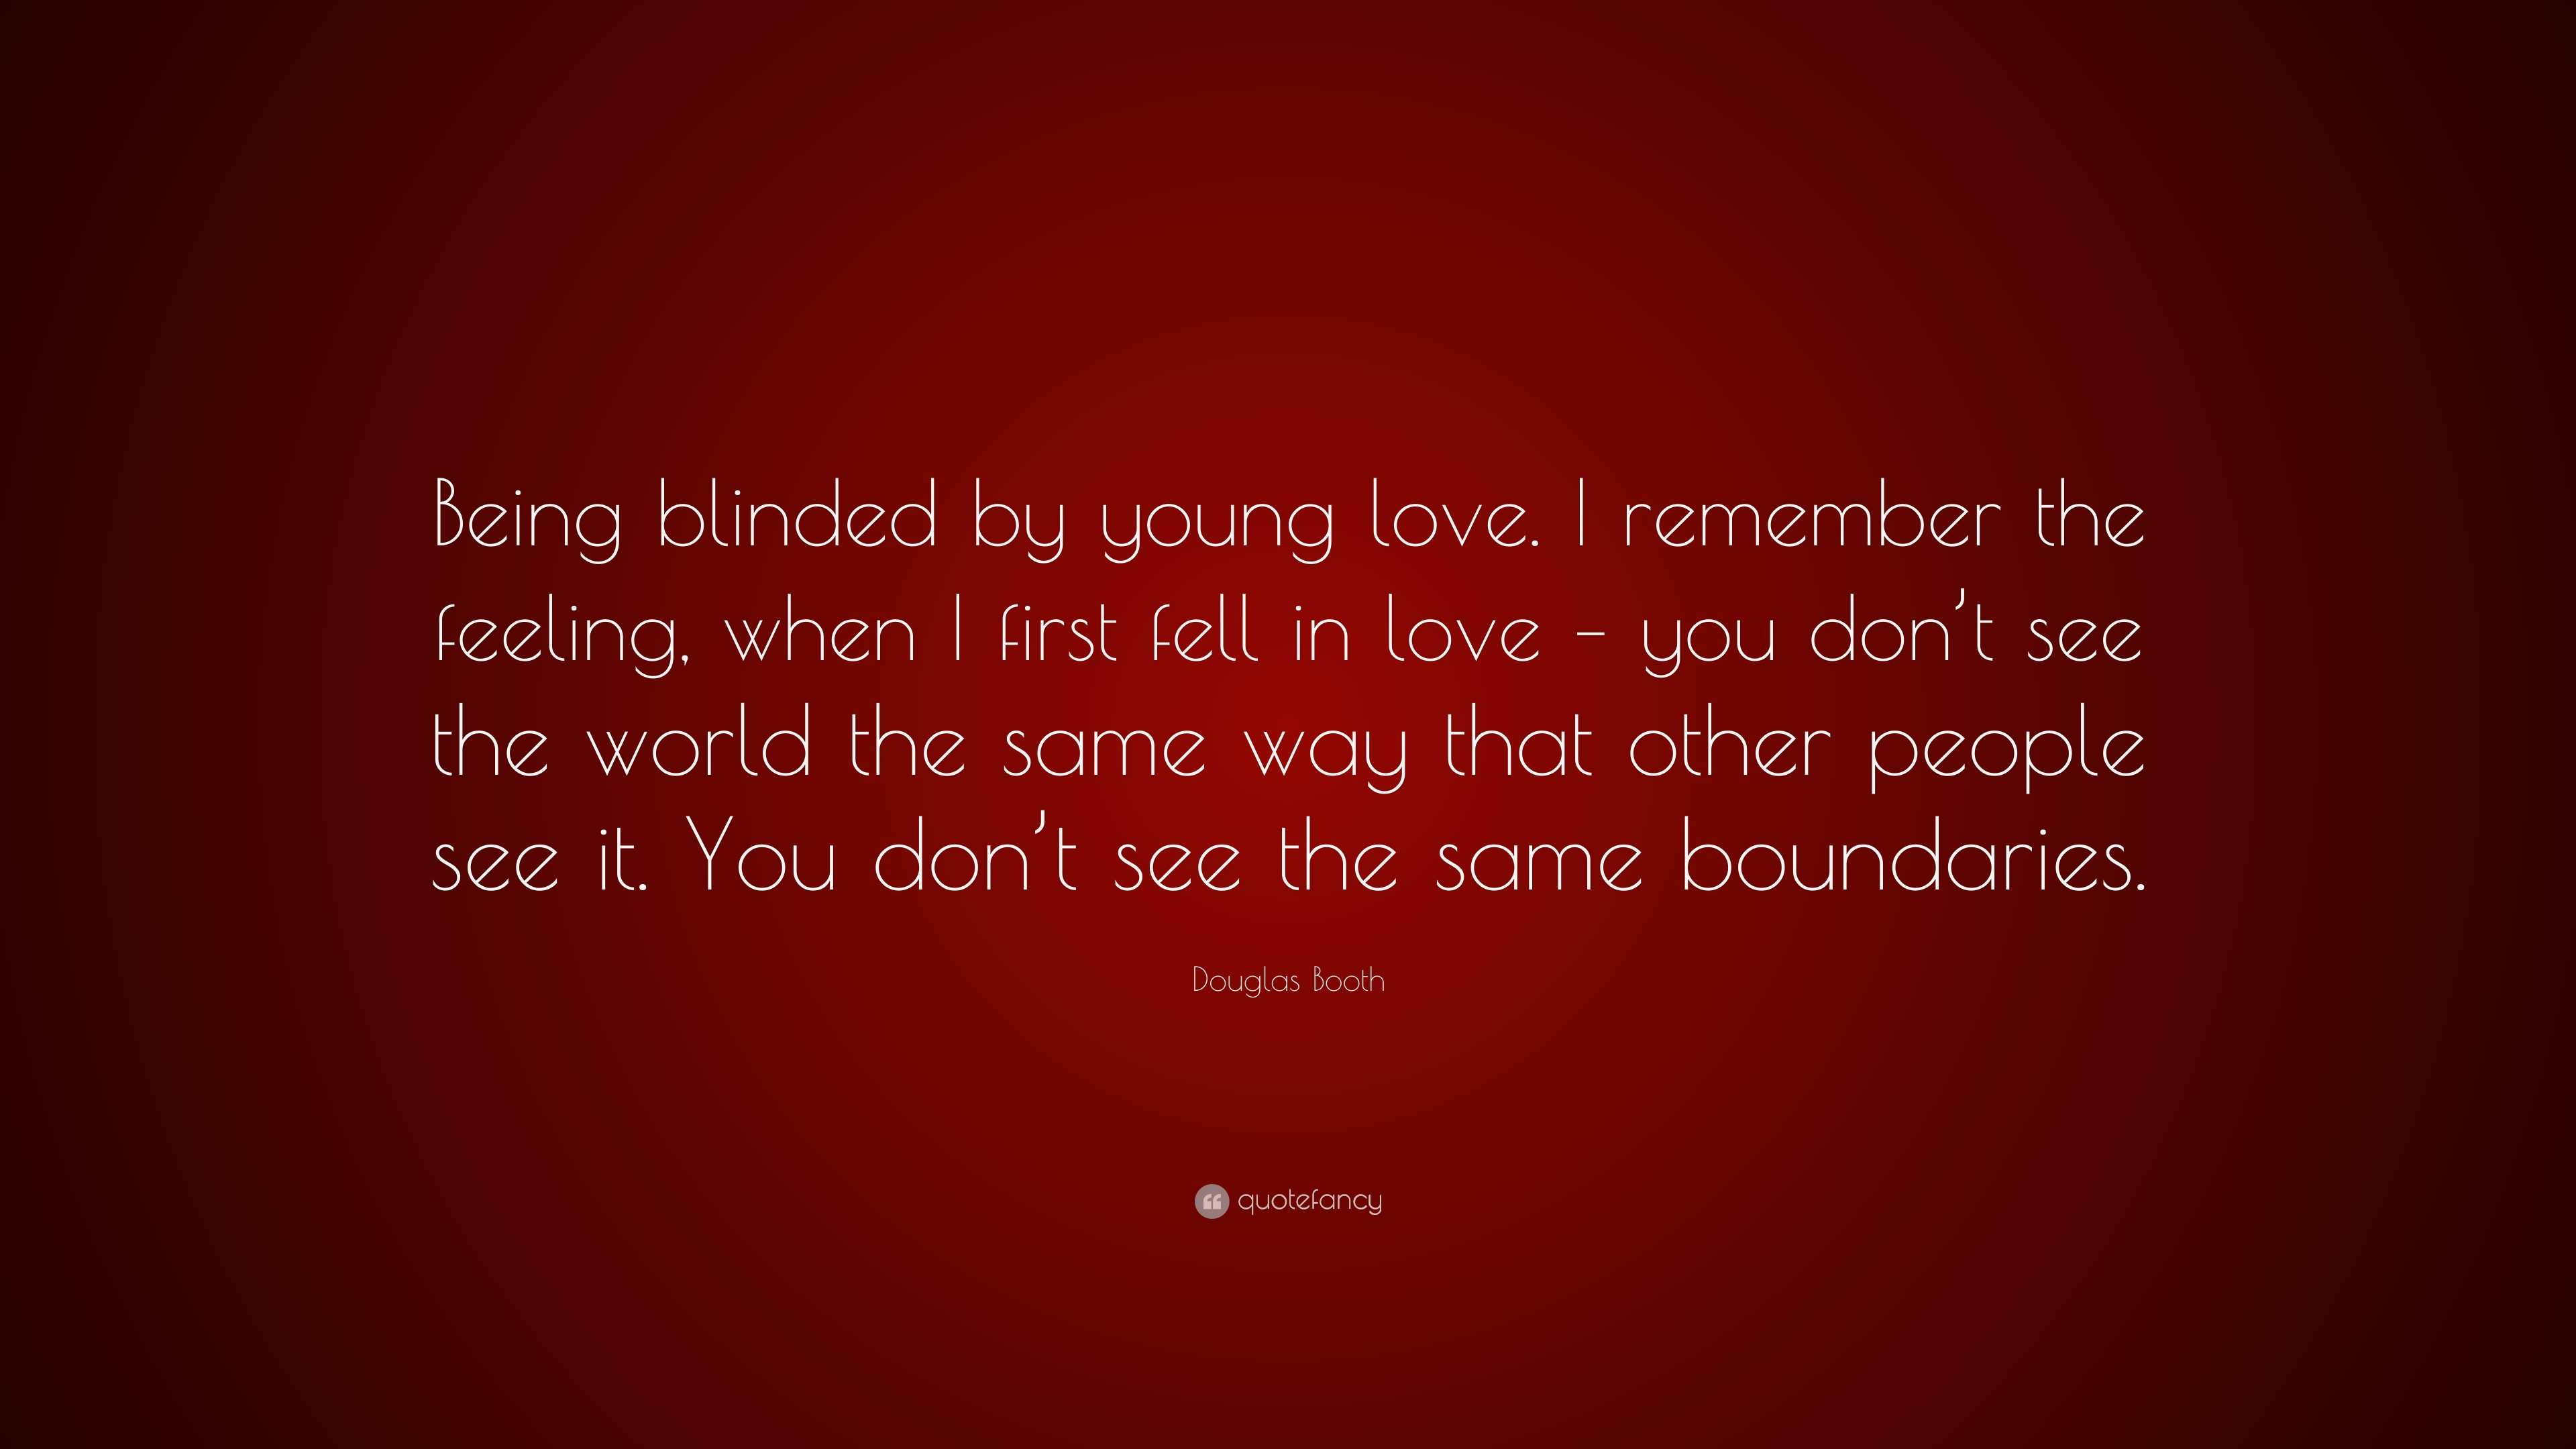 douglas booth quote being blinded by young love i remember the feeling